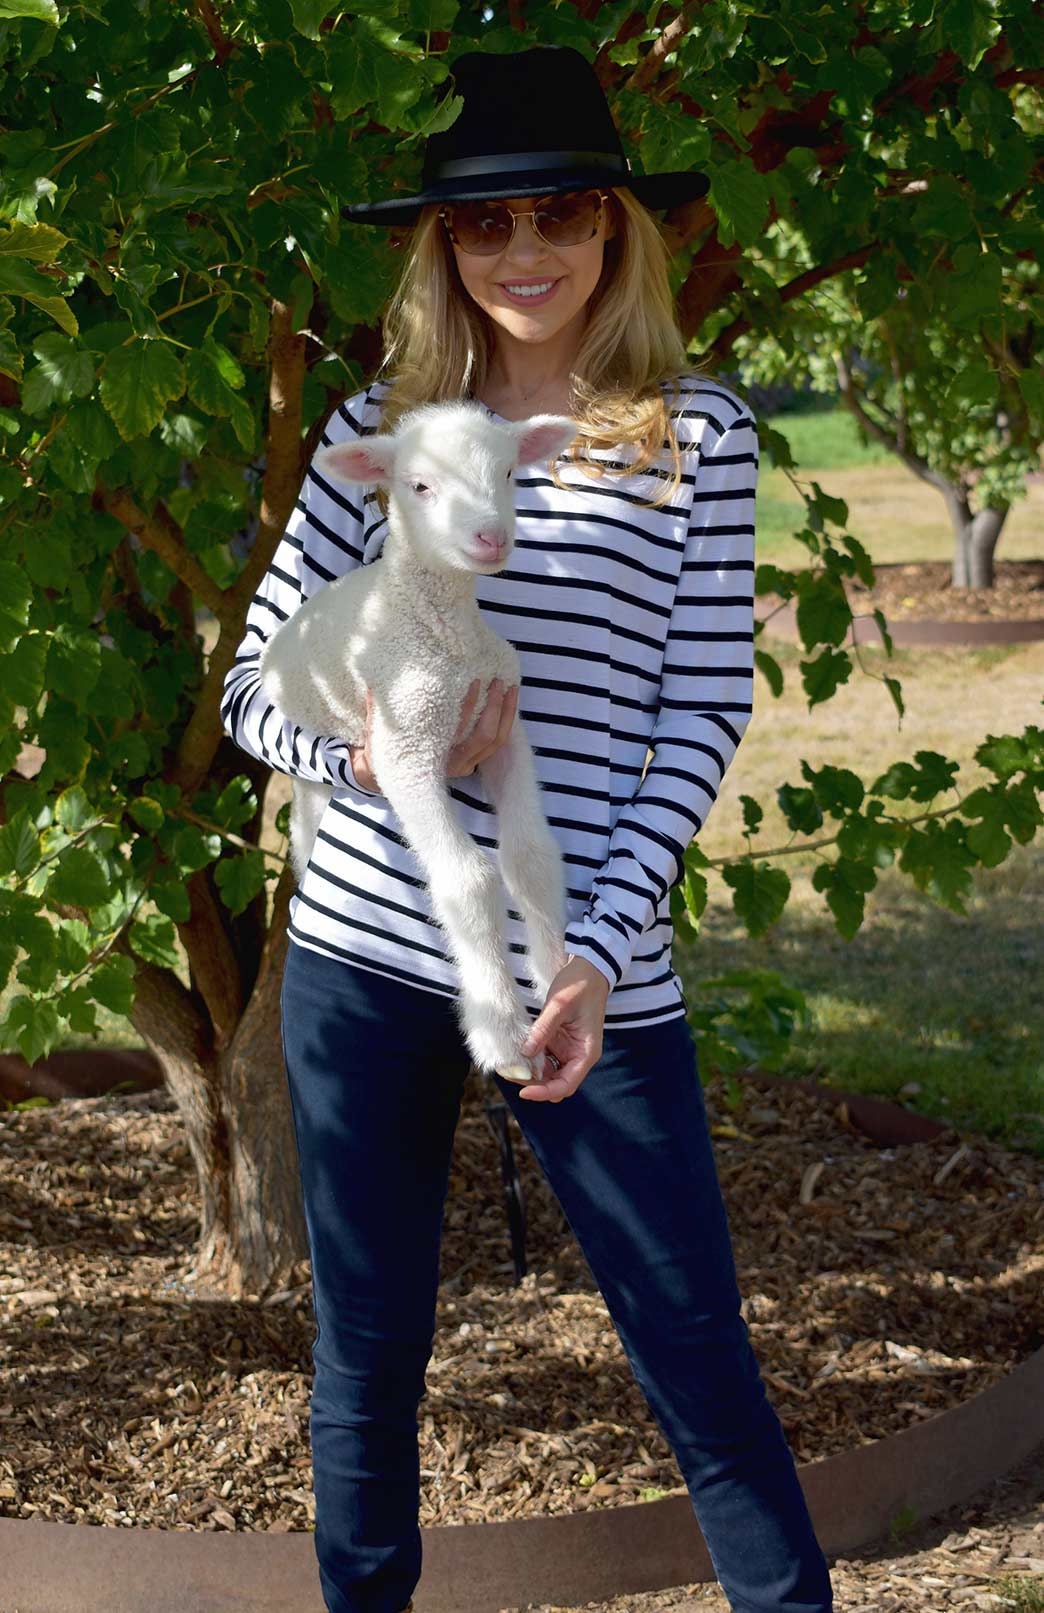 Round Neck Top - Rib Fabric - Women's White & Black French Striped Merino Wool Long Sleeve Top - Smitten Merino Tasmania Australia